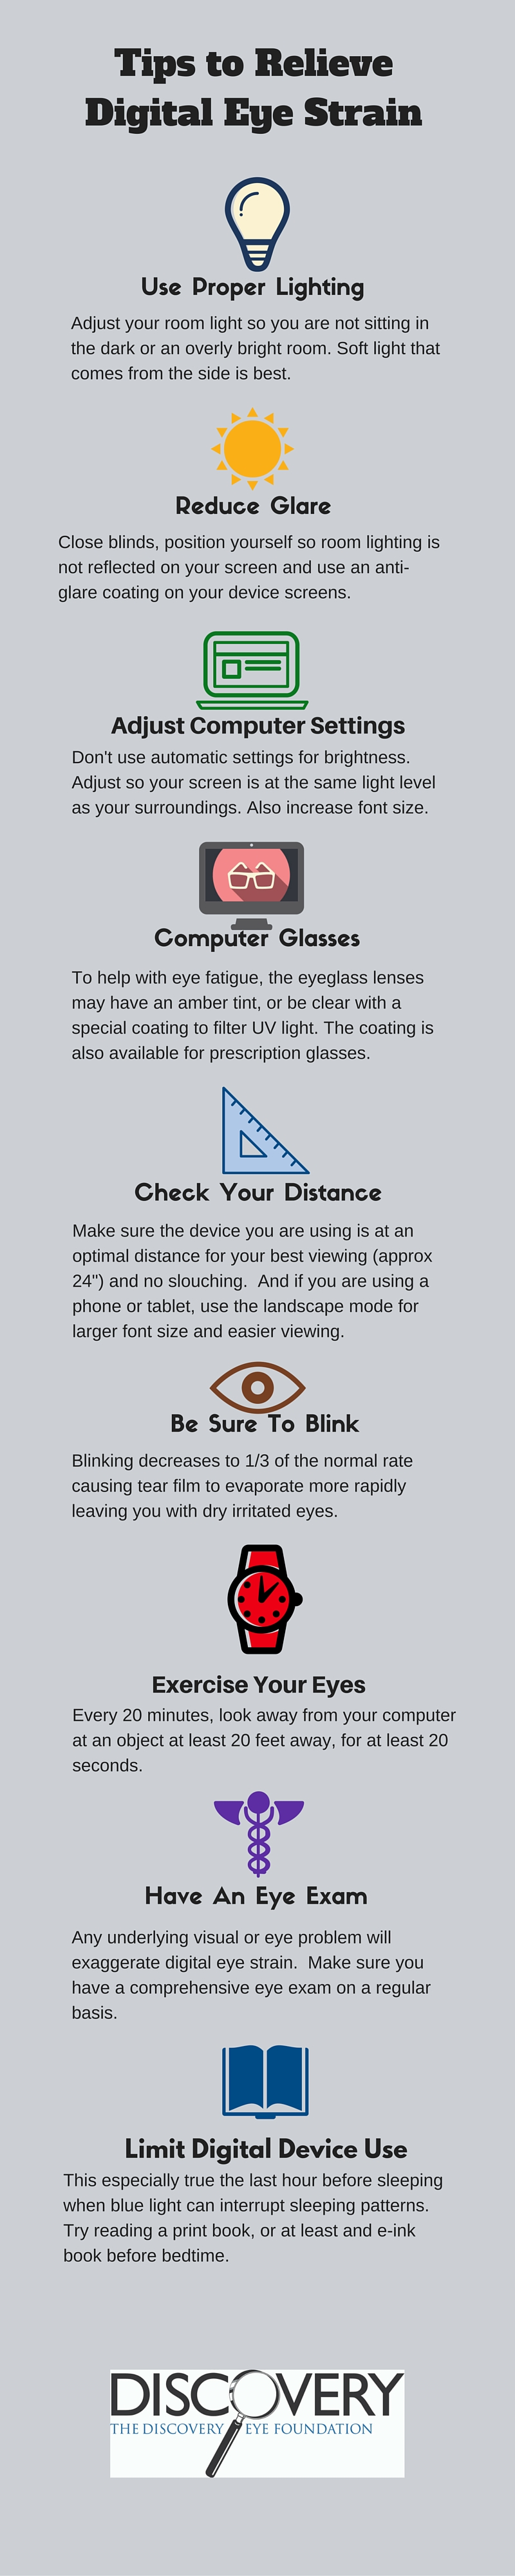 9 tips to relieve digital eye strain